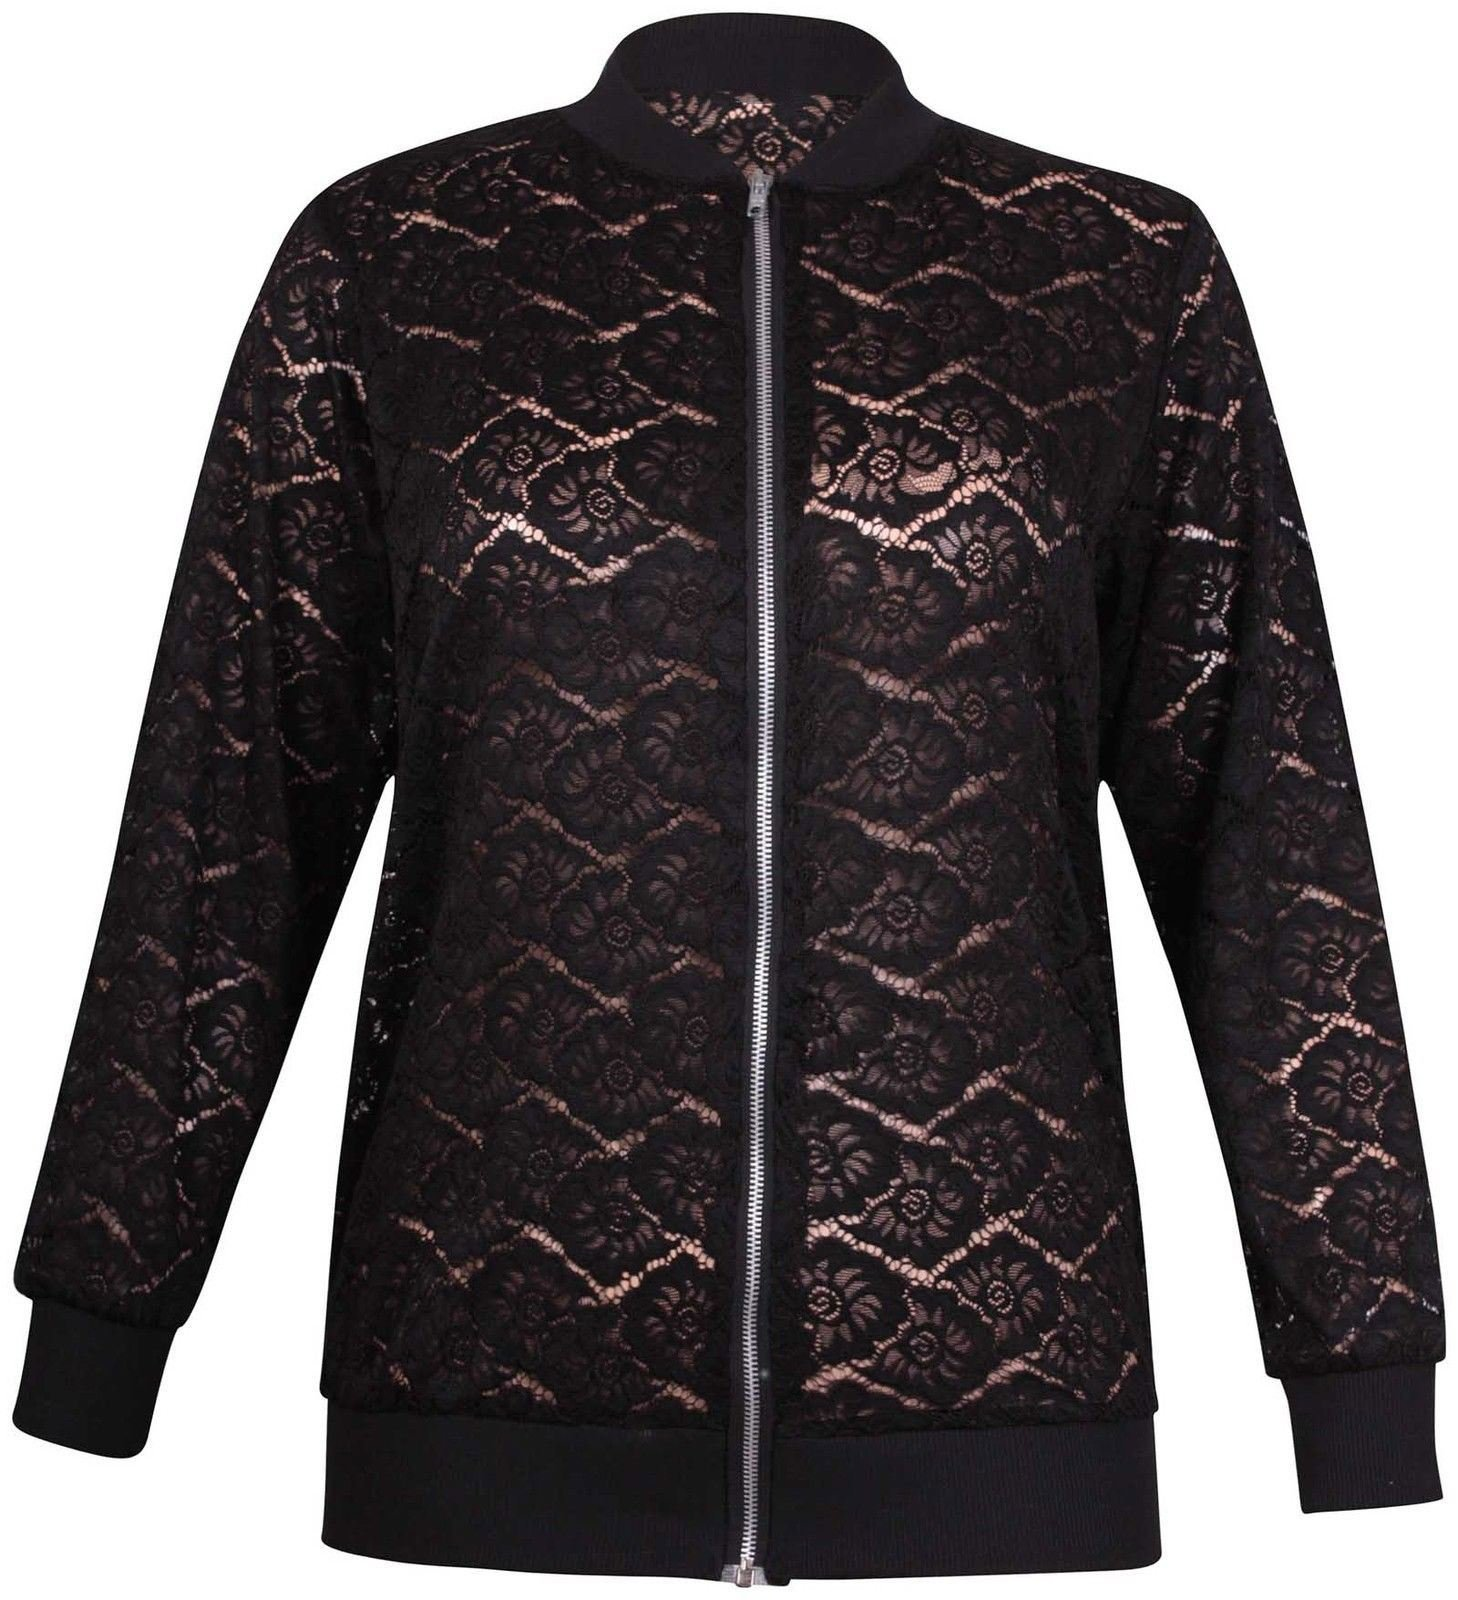 Womens Floral Lace Zip Up Bomber Jacket Ladies Long Sleeve Stretch Collar Top#(Black Floral Lace Zipper Bomber Jacket#US 22-24#Womens)